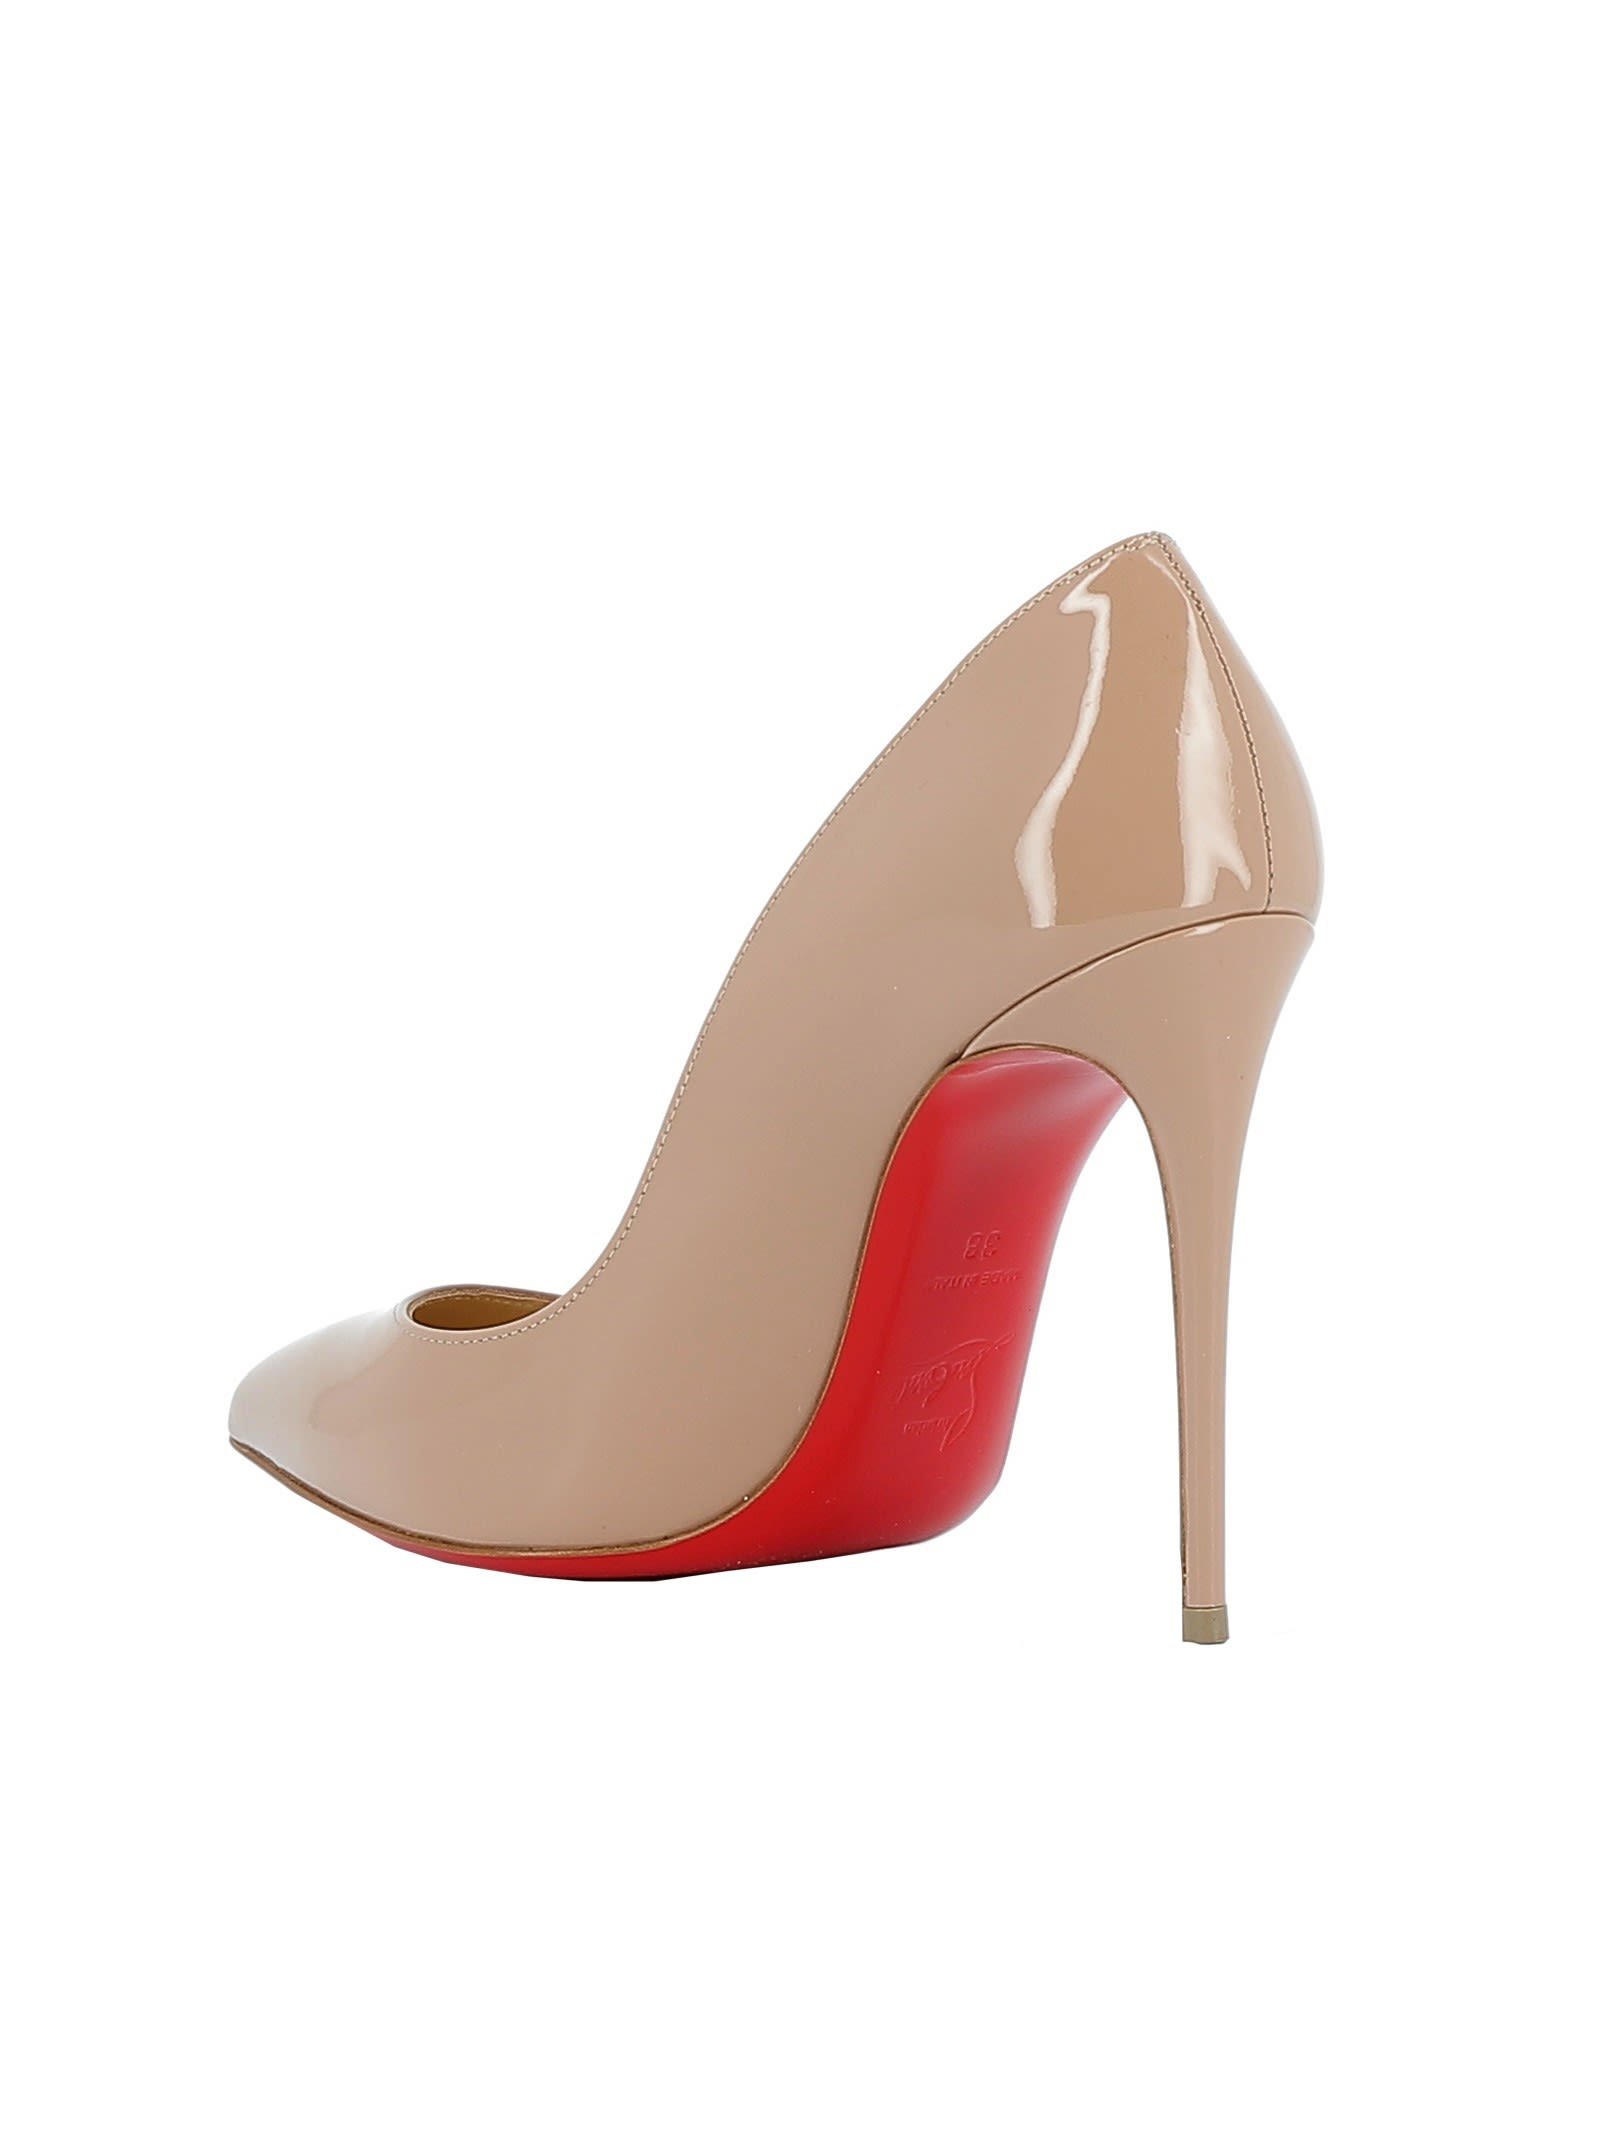 newest 219f3 98178 Best price on the market at italist | Christian Louboutin Christian  Louboutin Nude Patent Leather Pumps